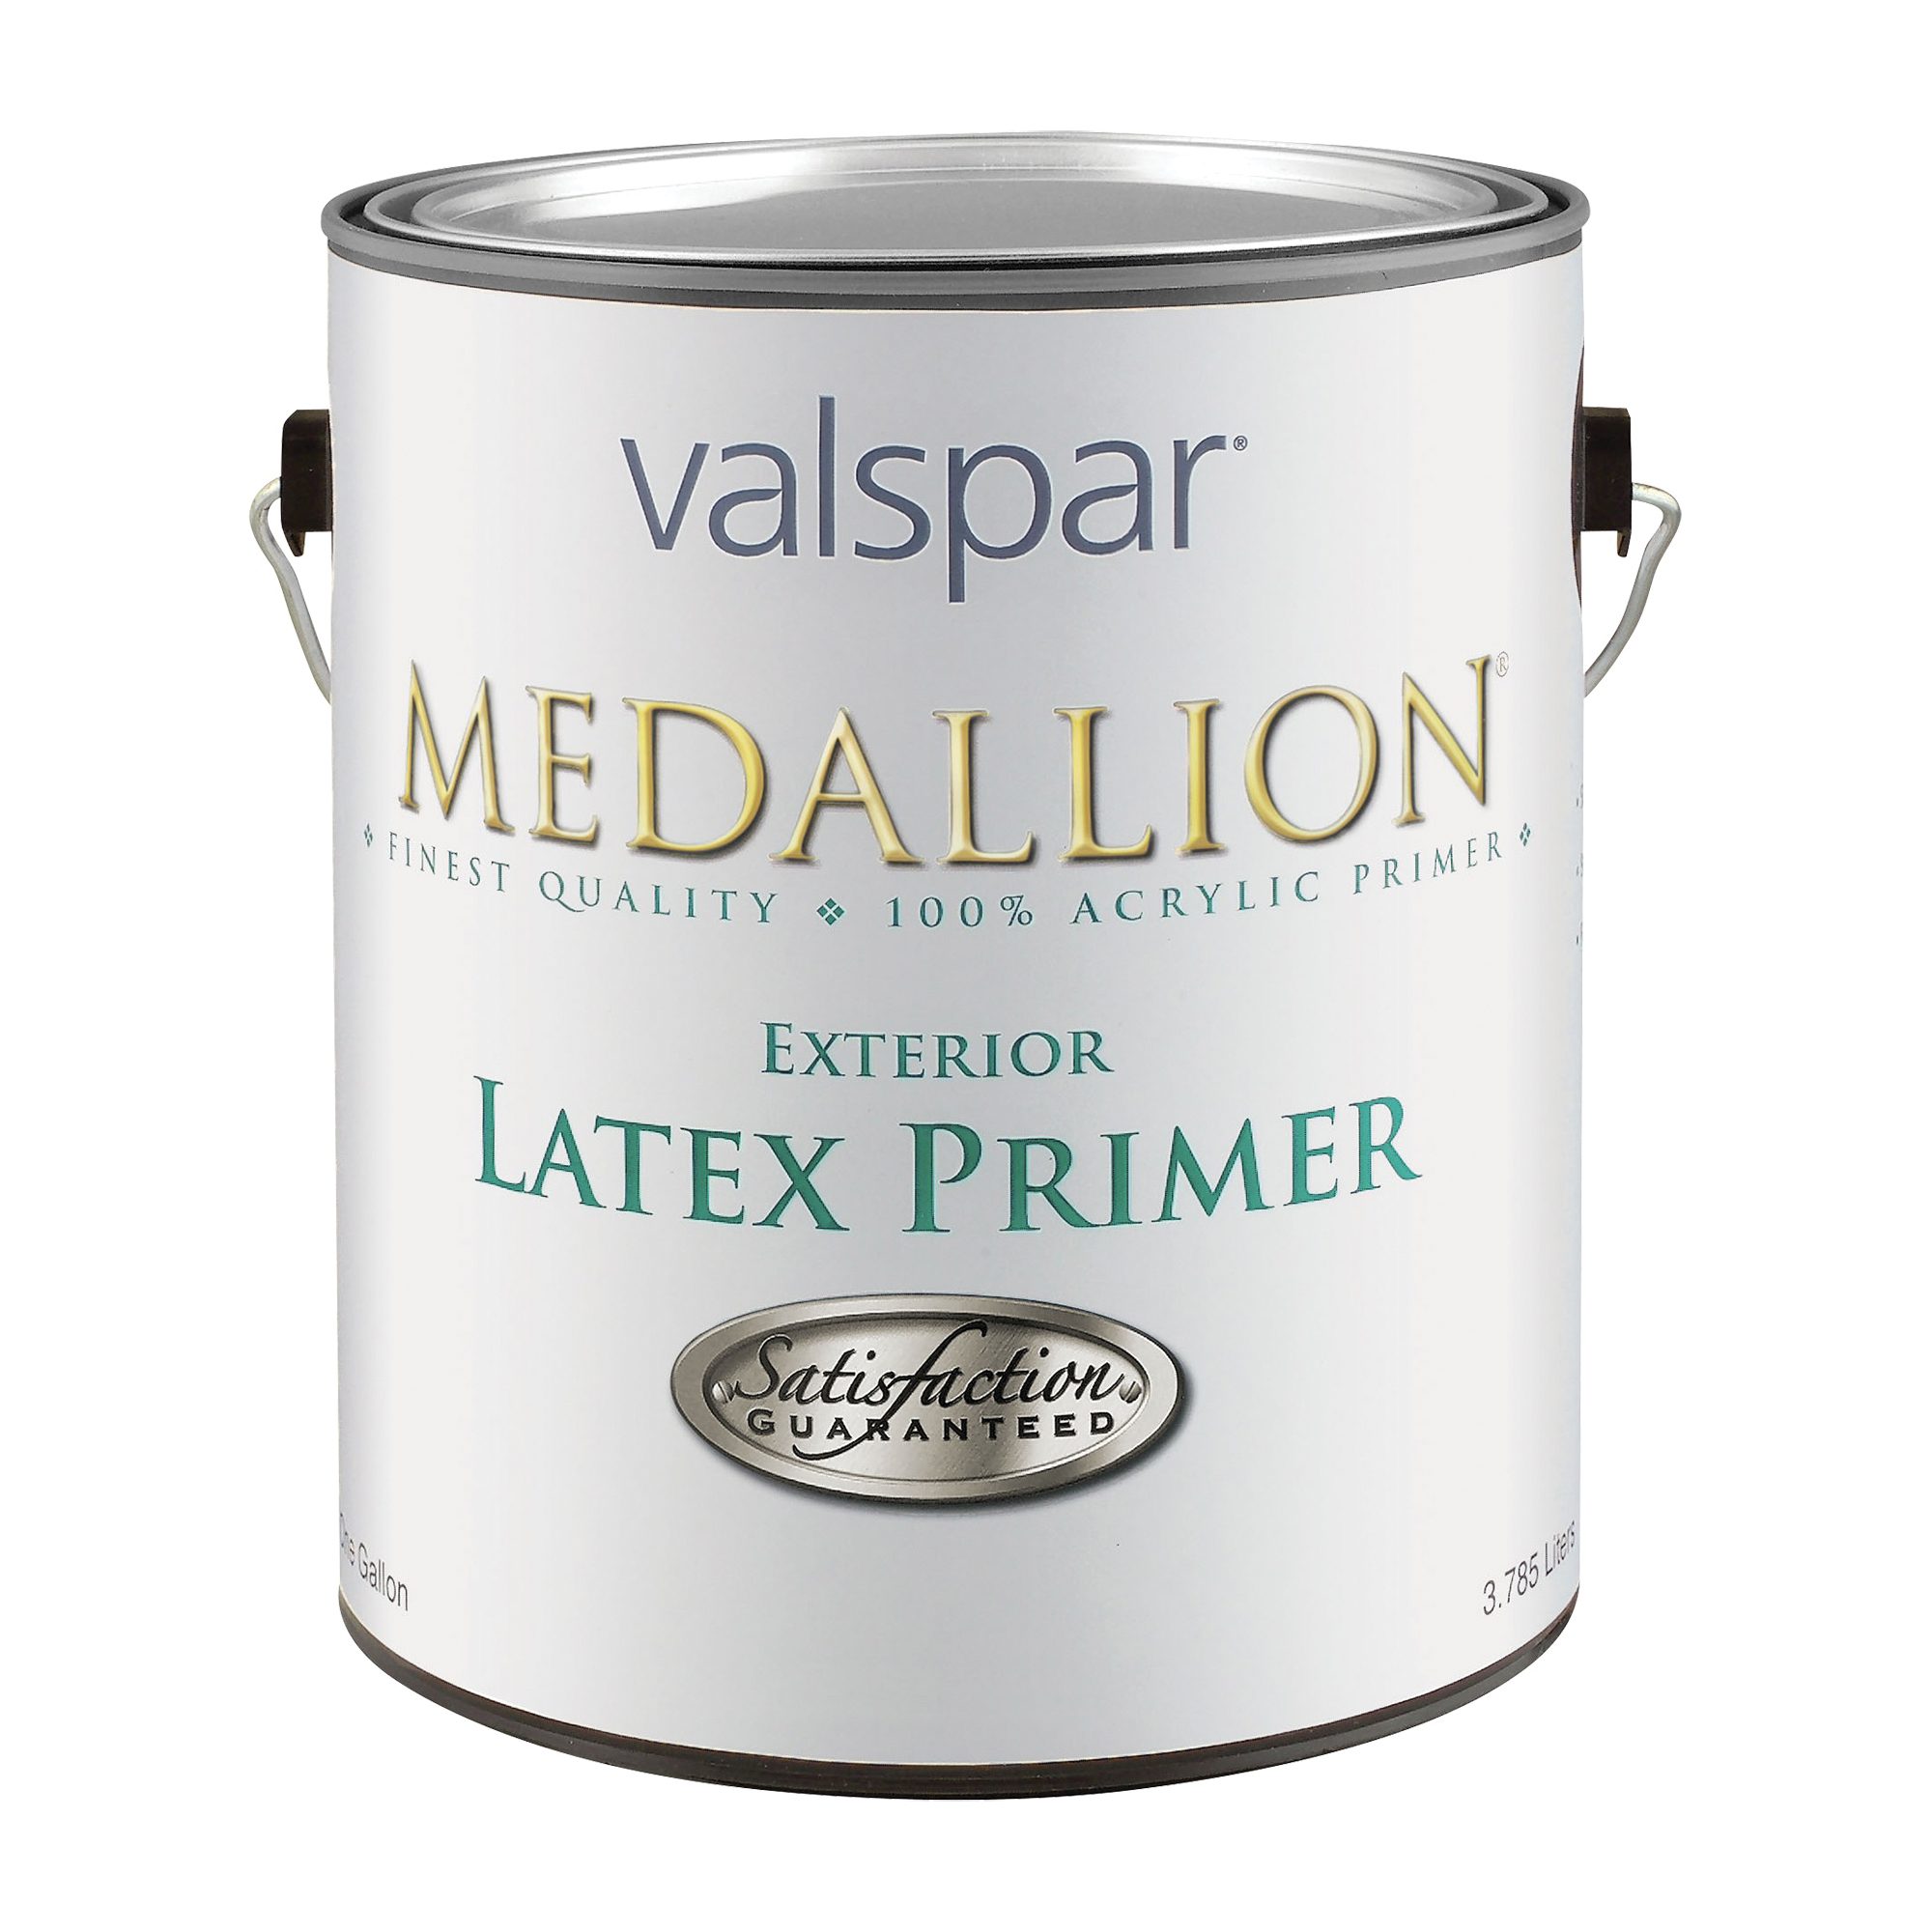 Picture of Valspar Medallion 181 Exterior Primer, White, 1 gal